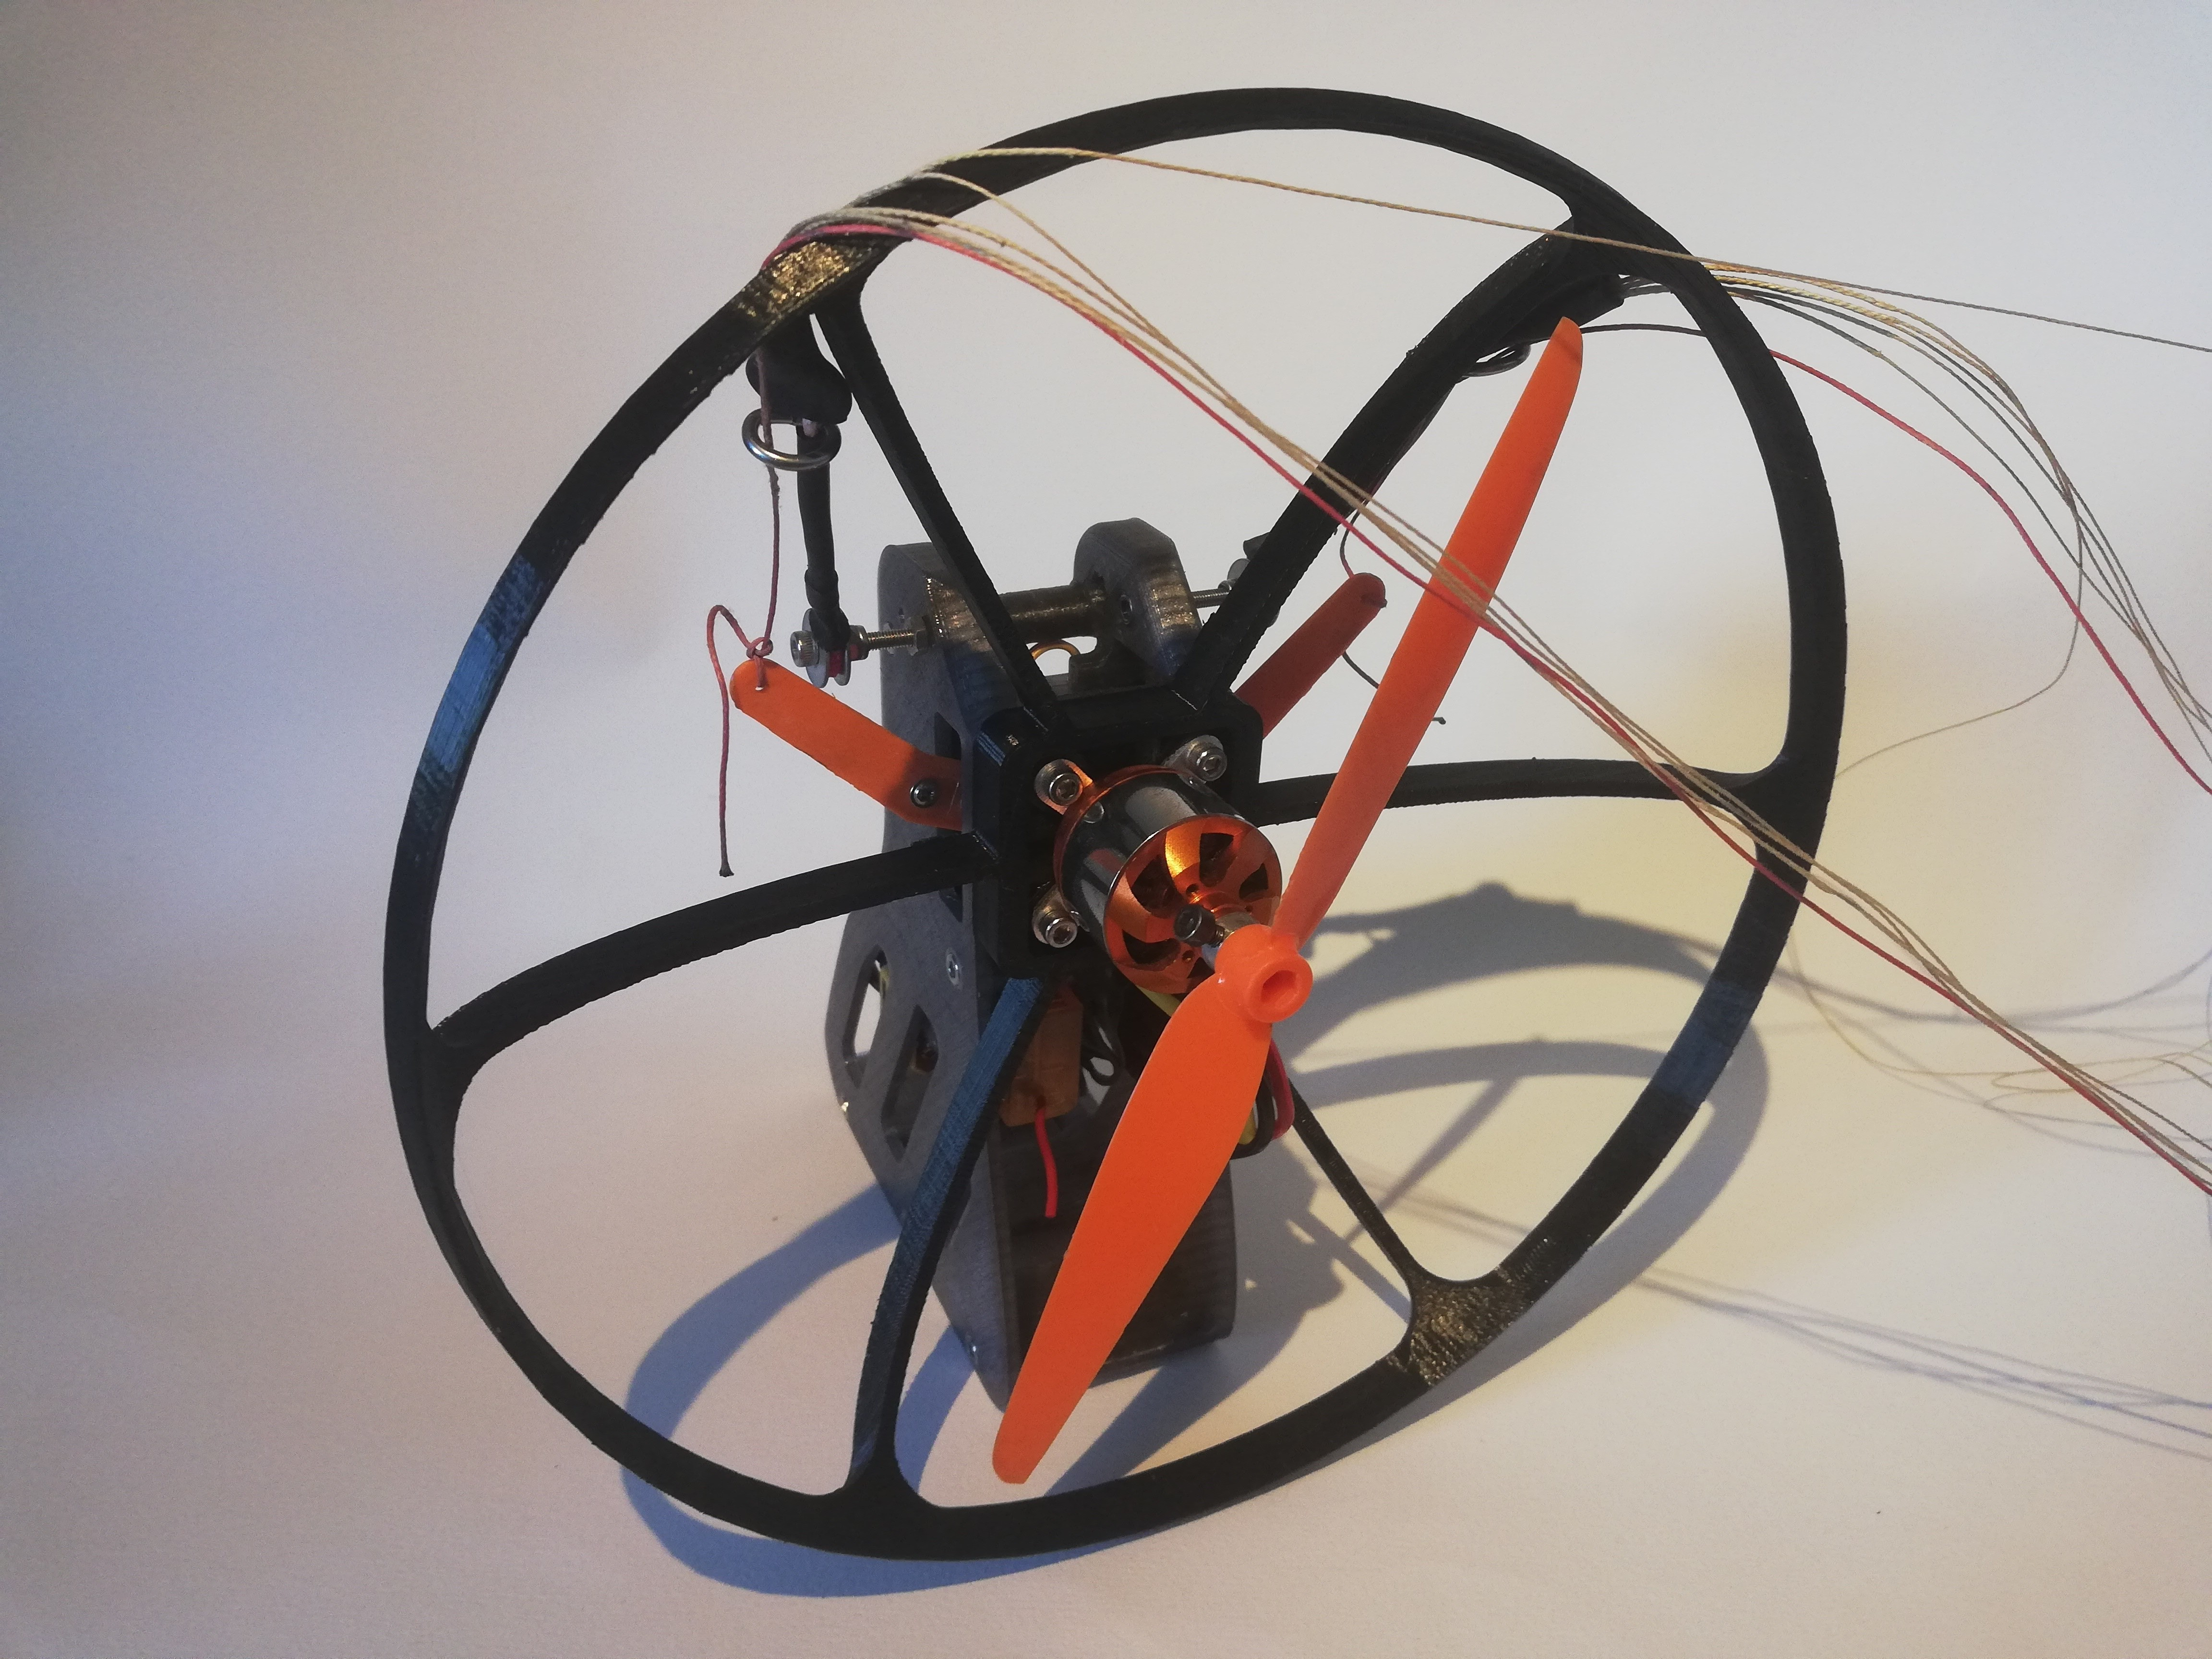 IMG_20180917_183910.jpg Download STL file RC OXY 0.5 Paramotor Boat • Object to 3D print, robotprint3d